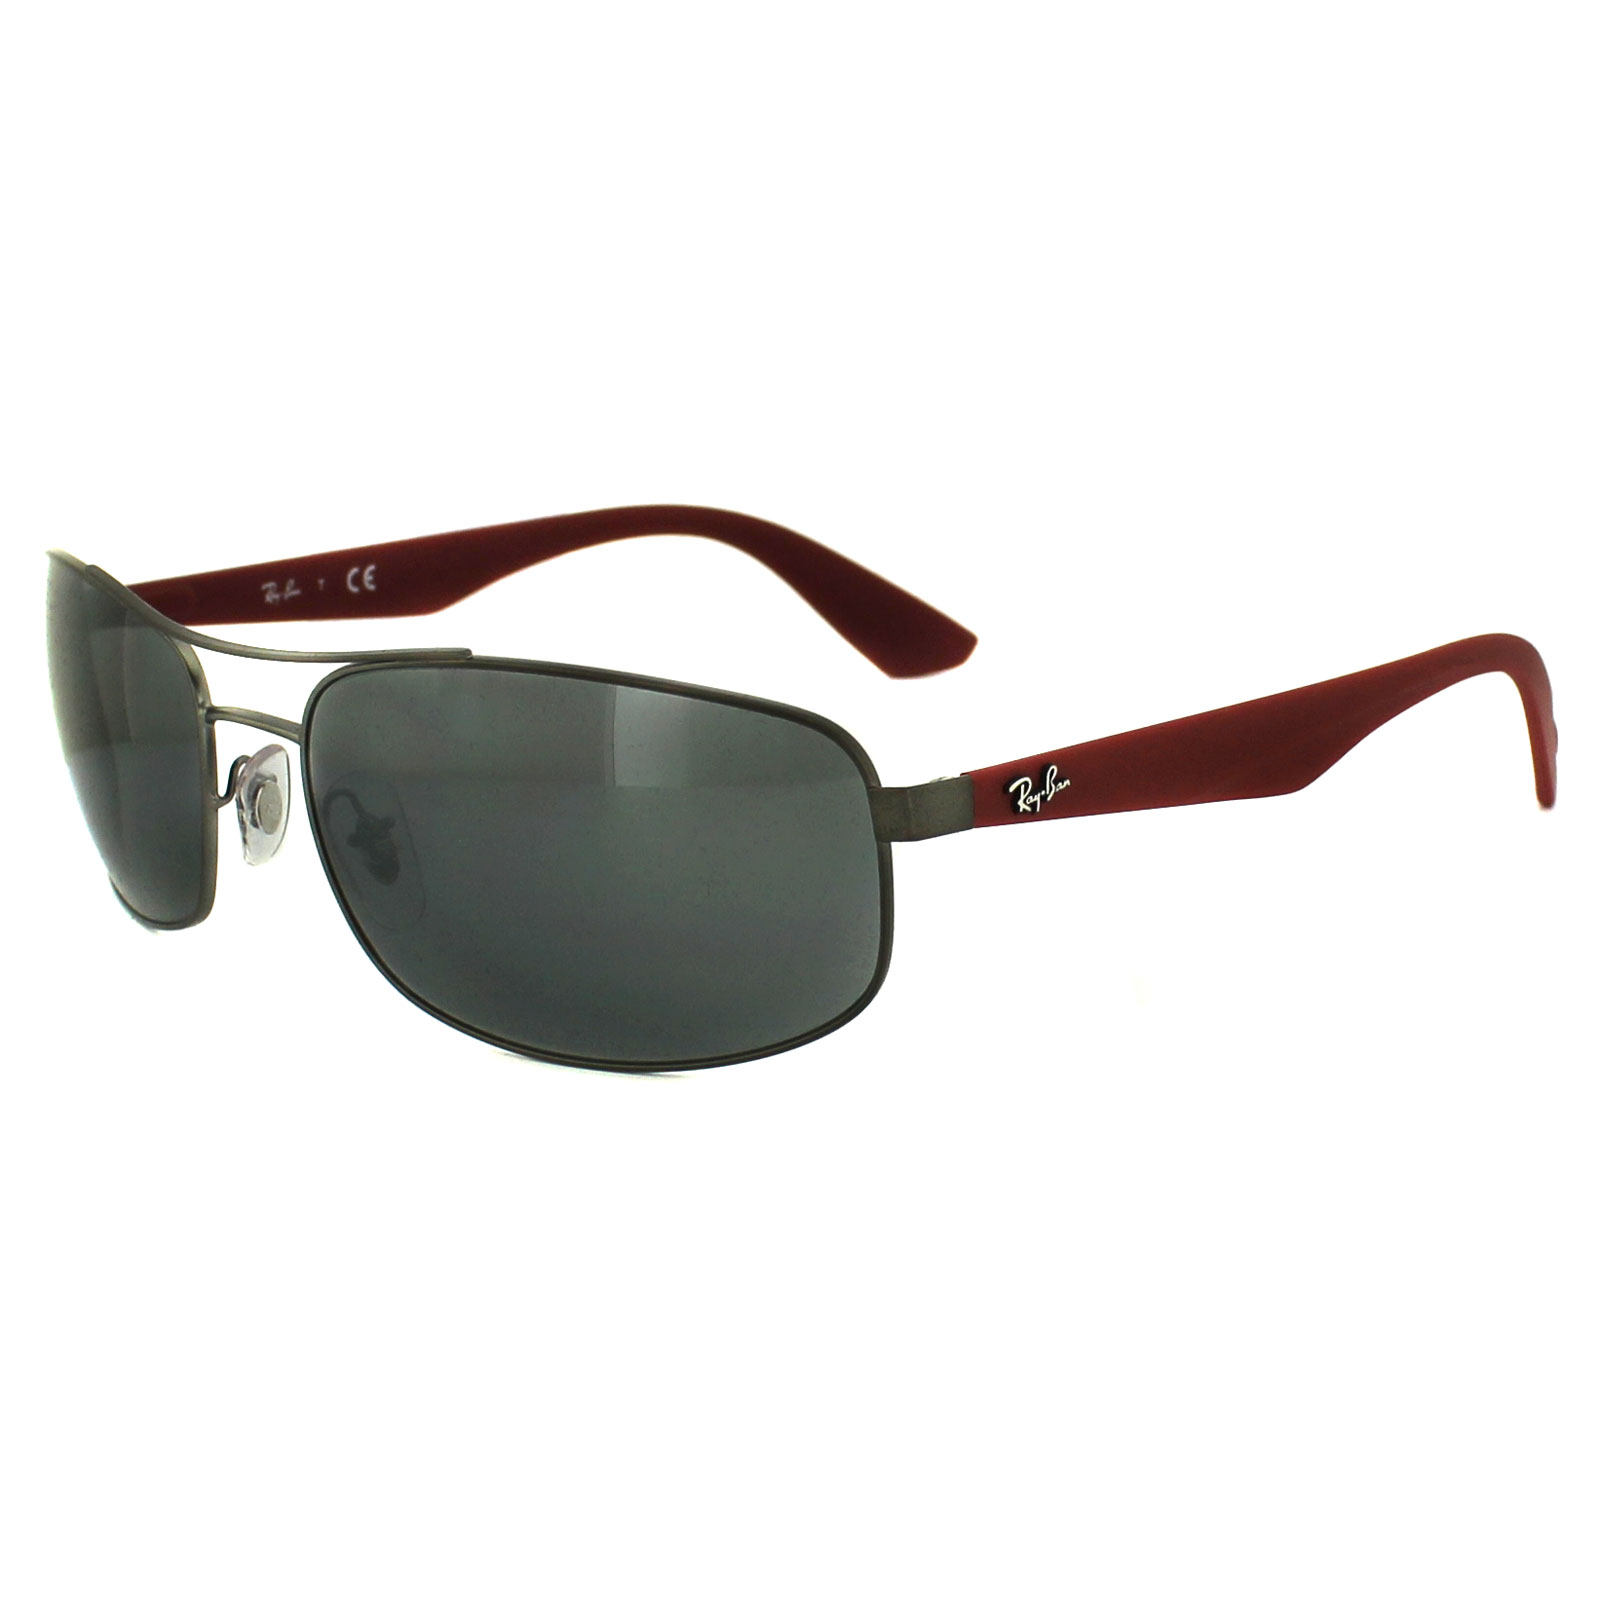 cheap ray ban sunglasses online  Cheap Ray-Ban Sunglasses - Discounted Sunglasses